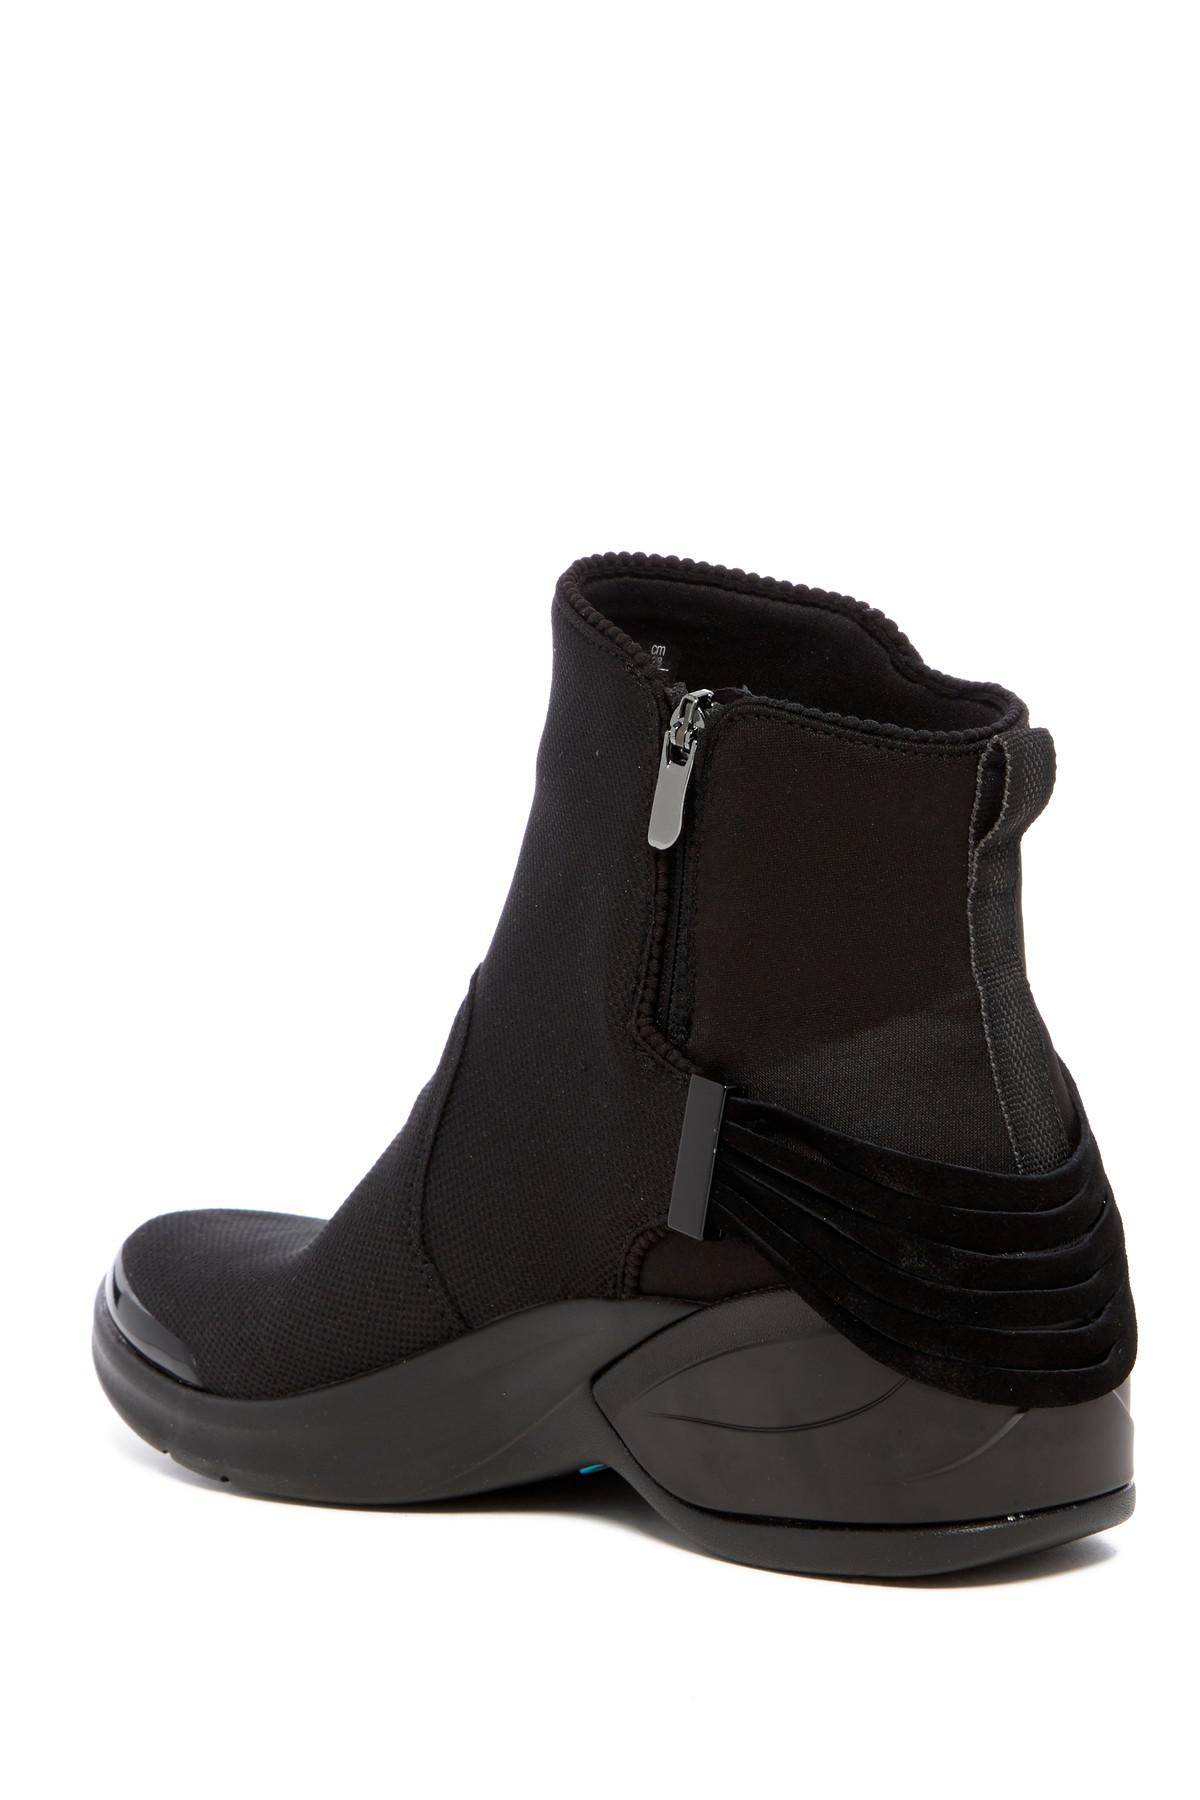 BZEES Mojo Strappy Mid Wedge Boot 6GAiF